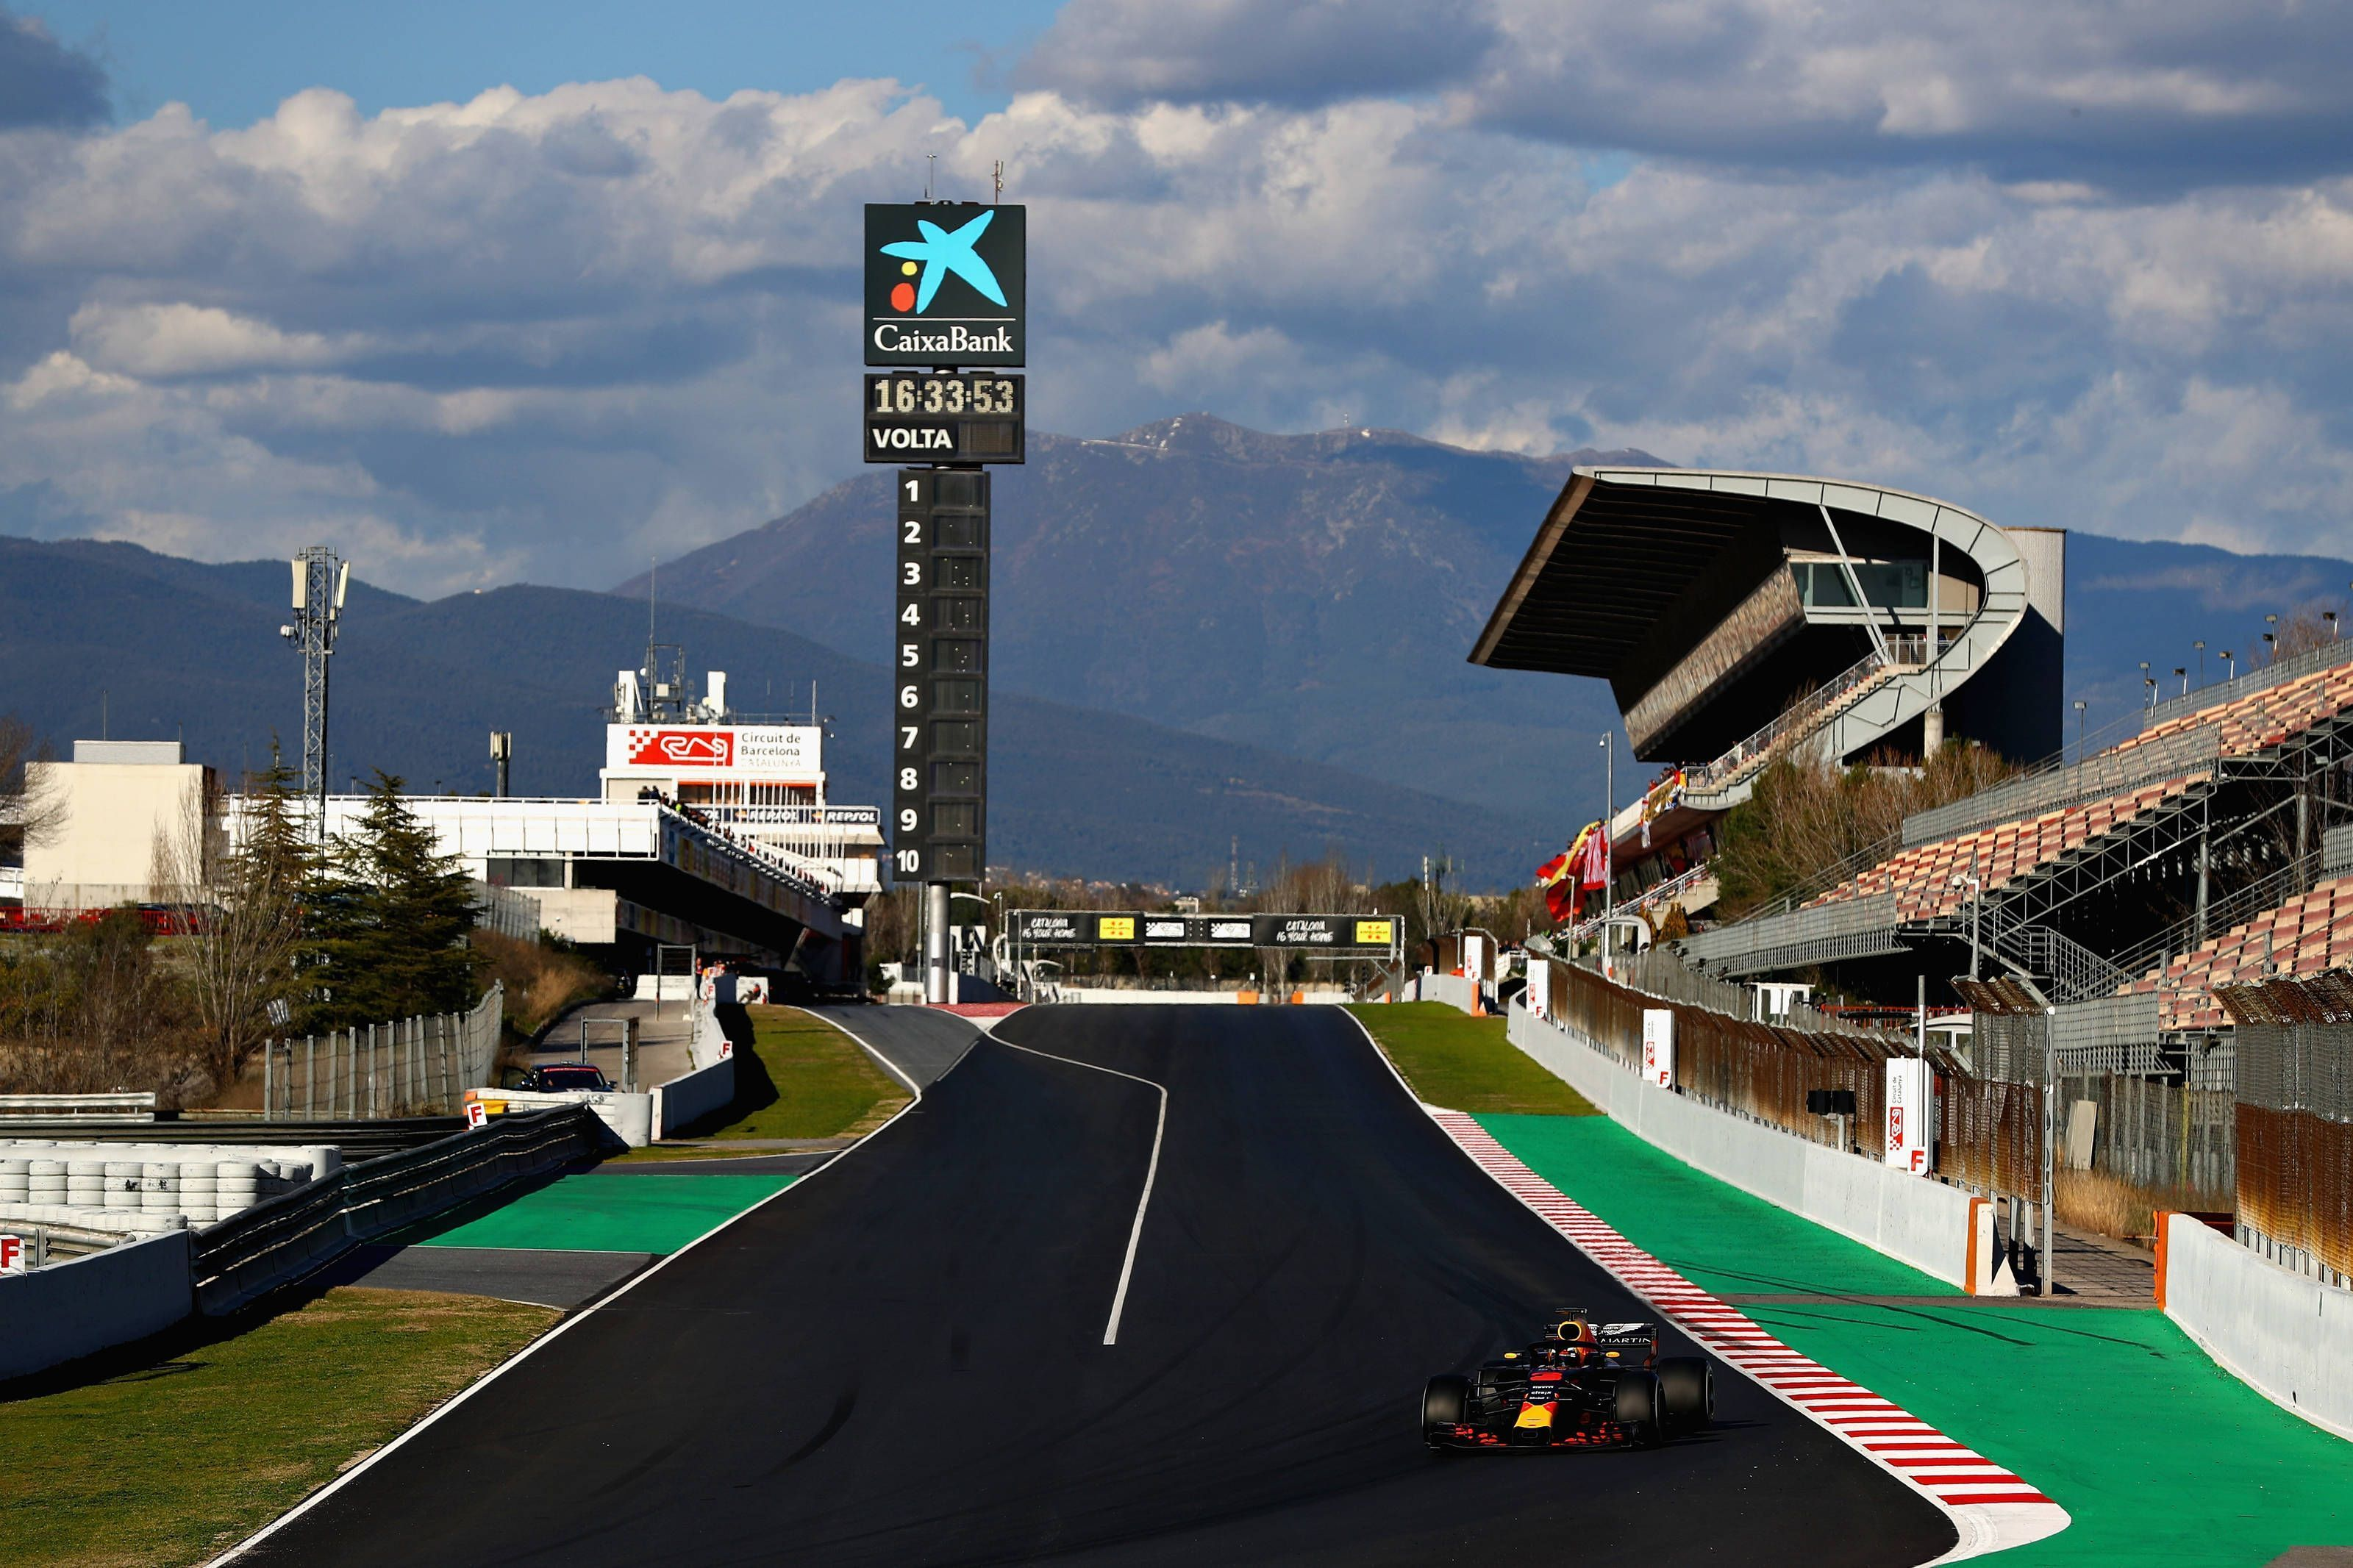 Sky Sports to telecast live coverage of 2019 F1 winter test from